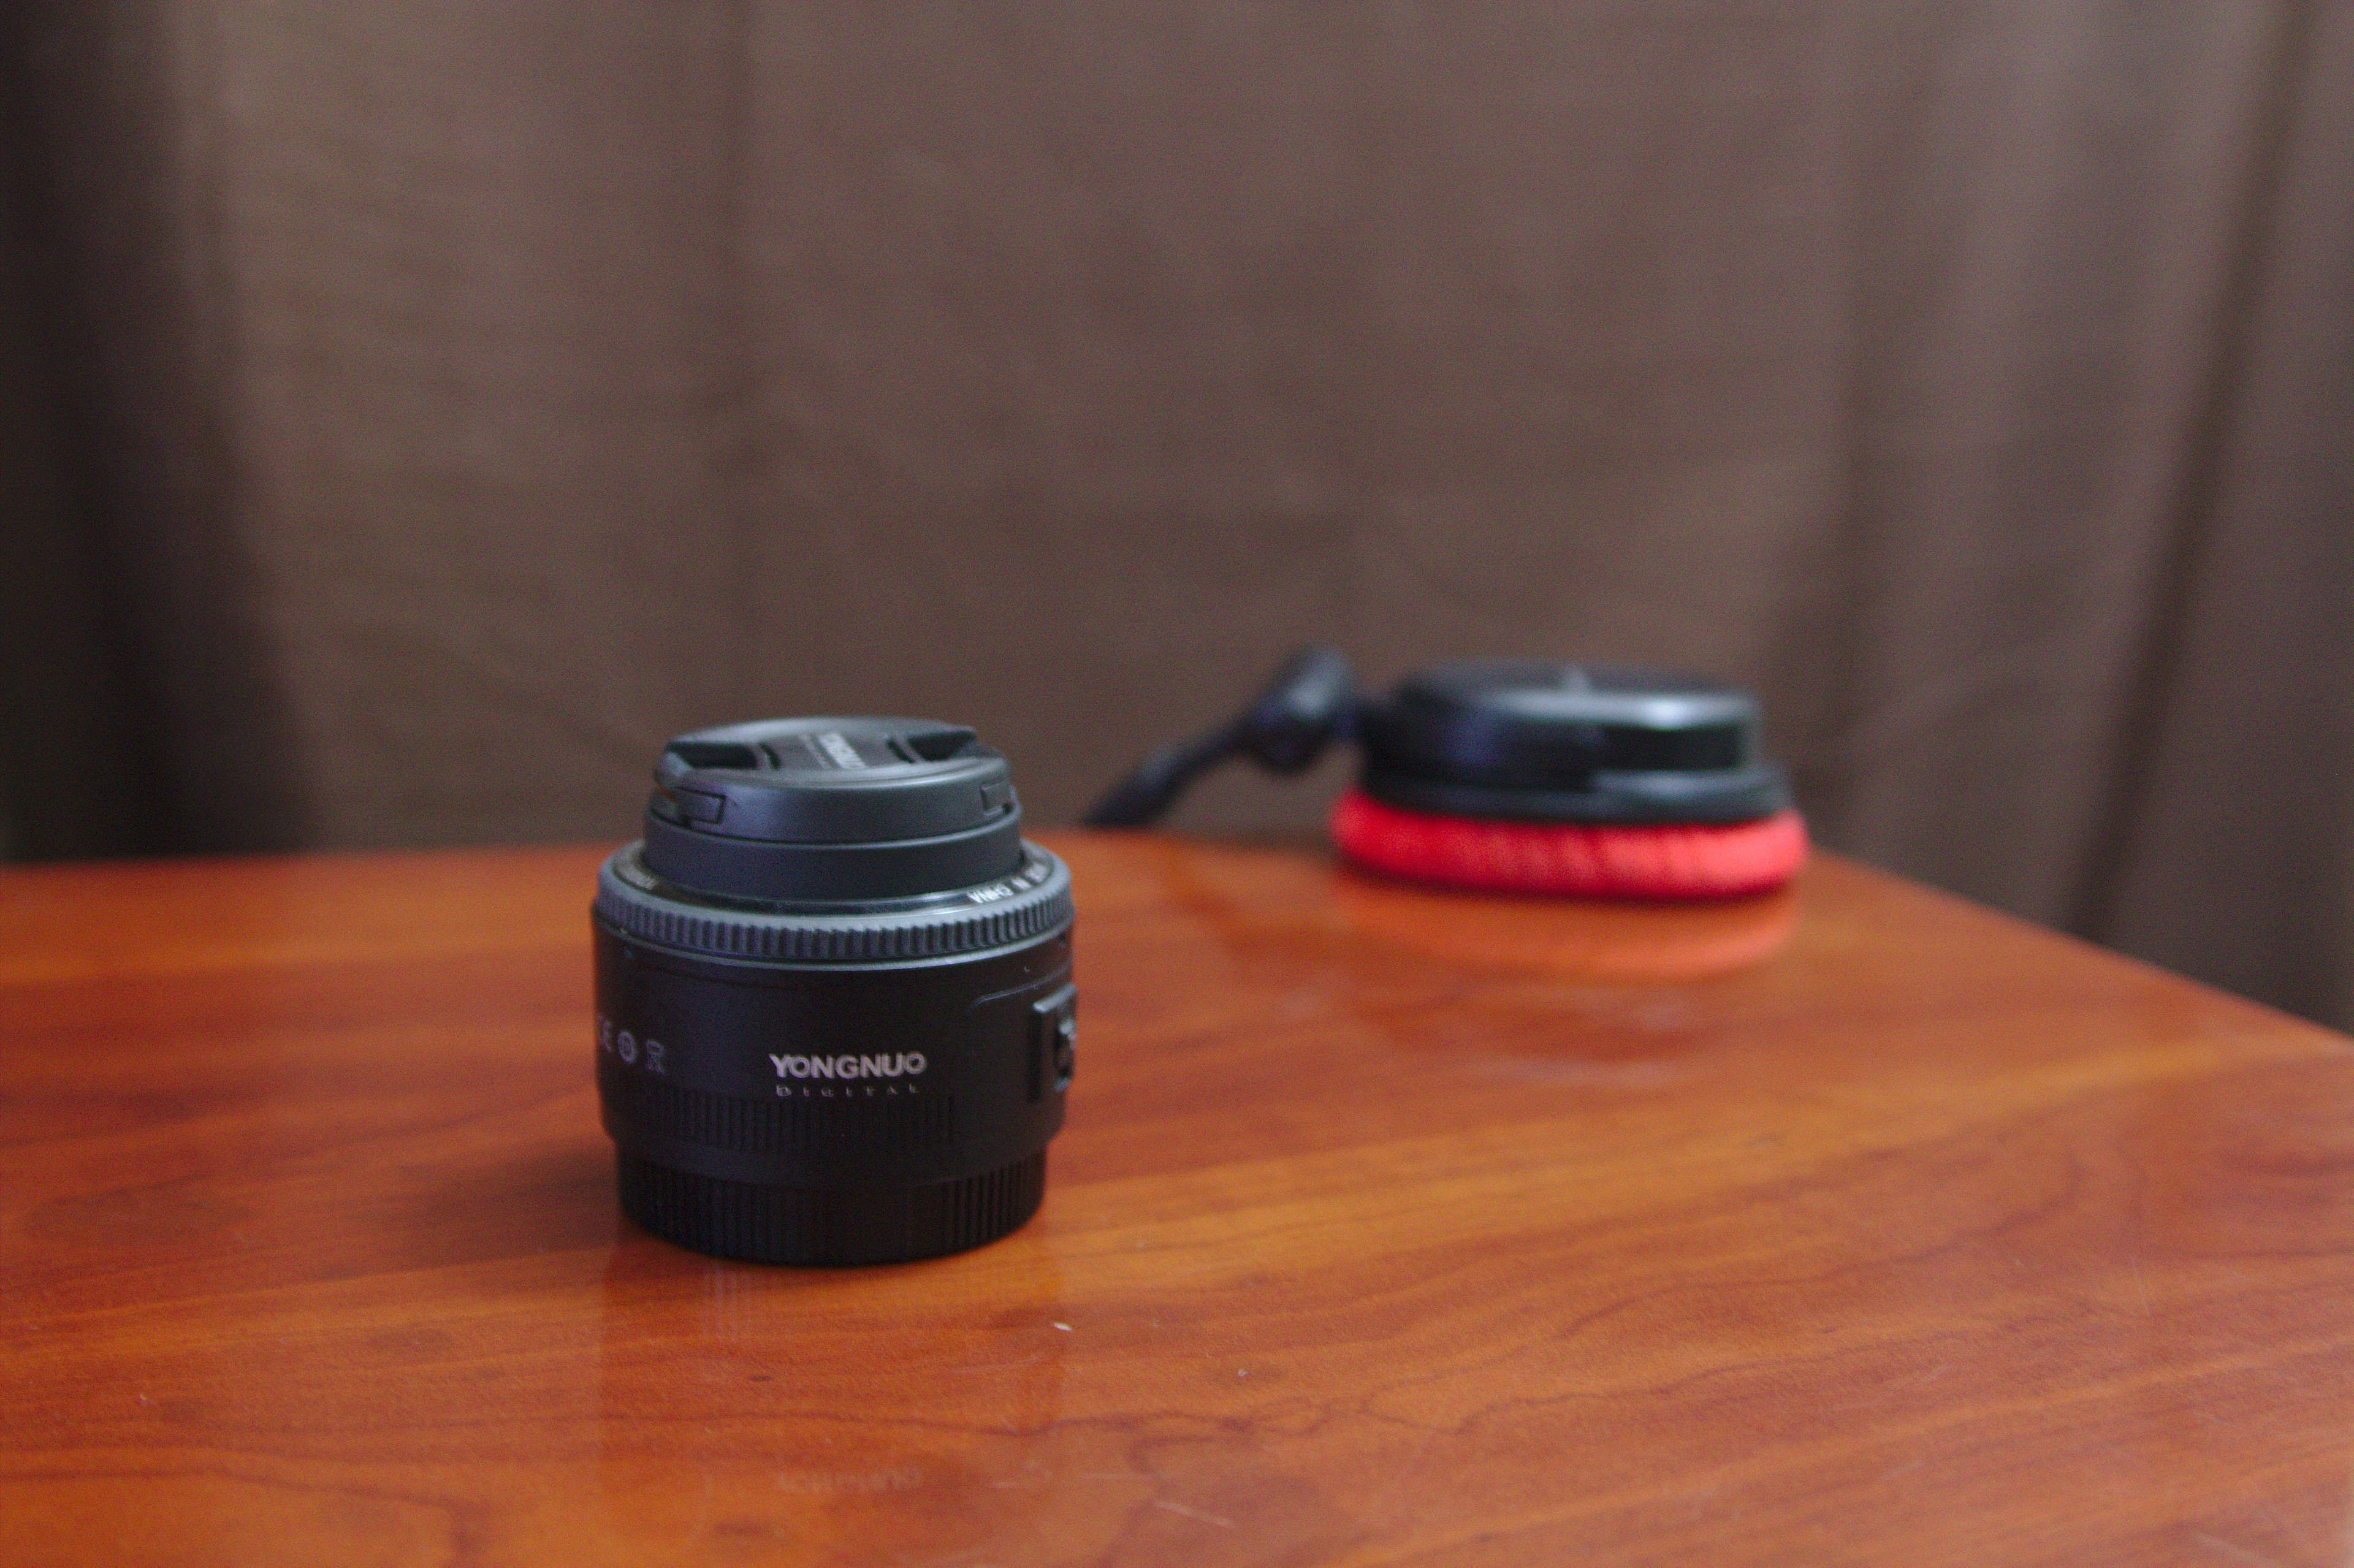 Canon 60D at ISO 800